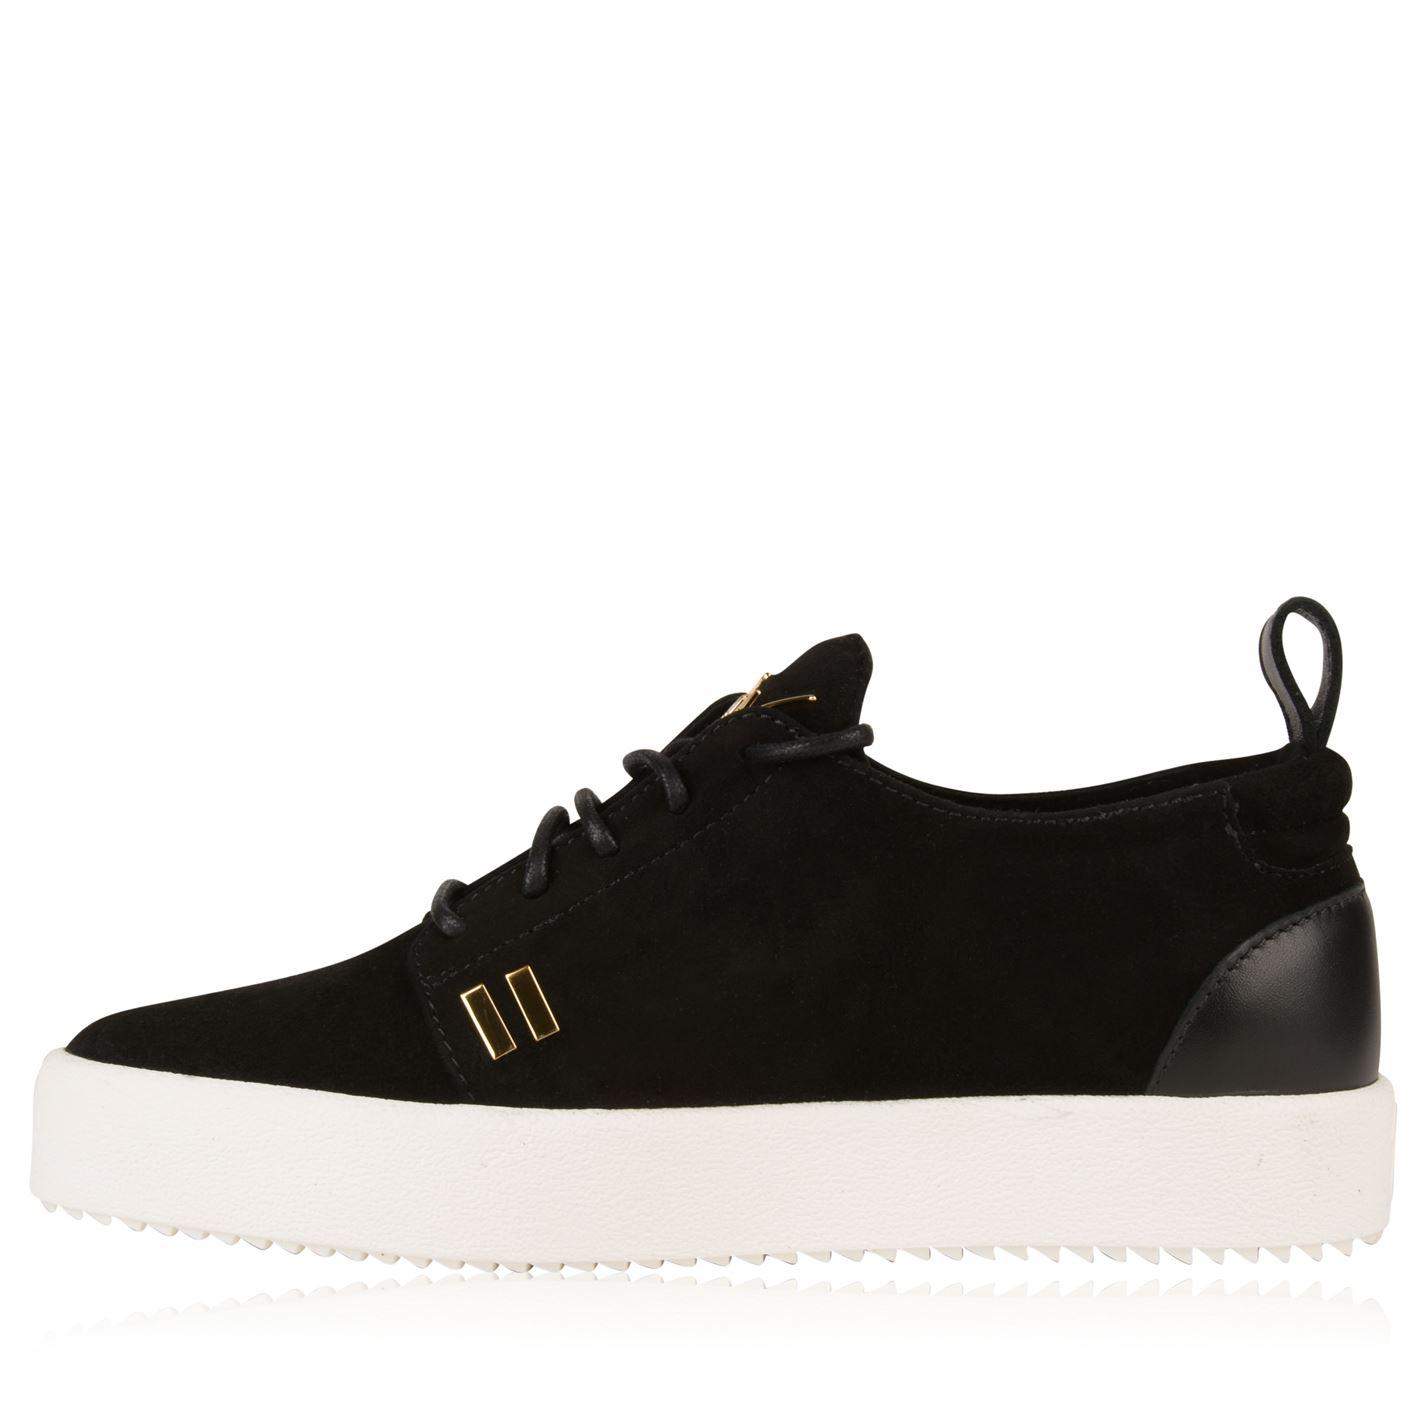 ff09ab79e6ef2 Giuseppe Zanotti Logoball May Low Top Trainers in Black for Men - Lyst